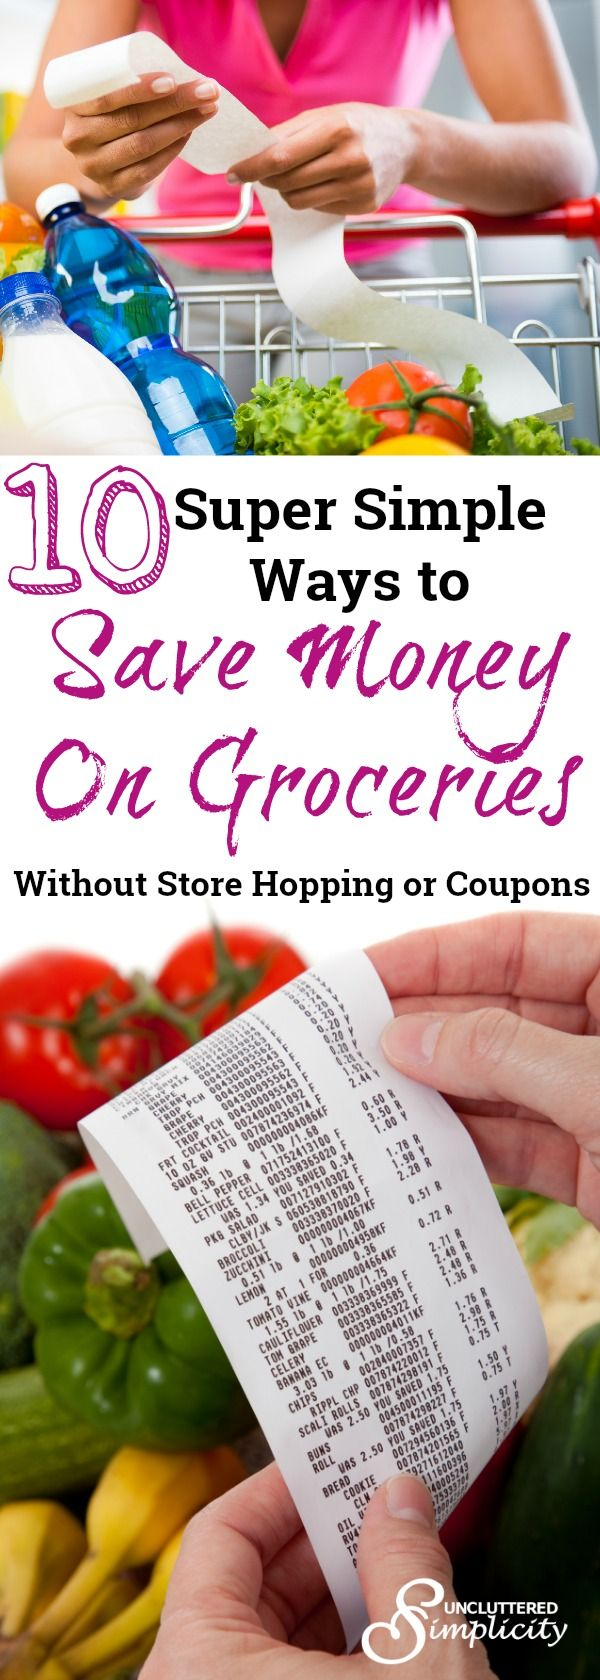 save money on groceries without coupons | tips to save money at the grocery store | money saving ideas via @CherylLemily